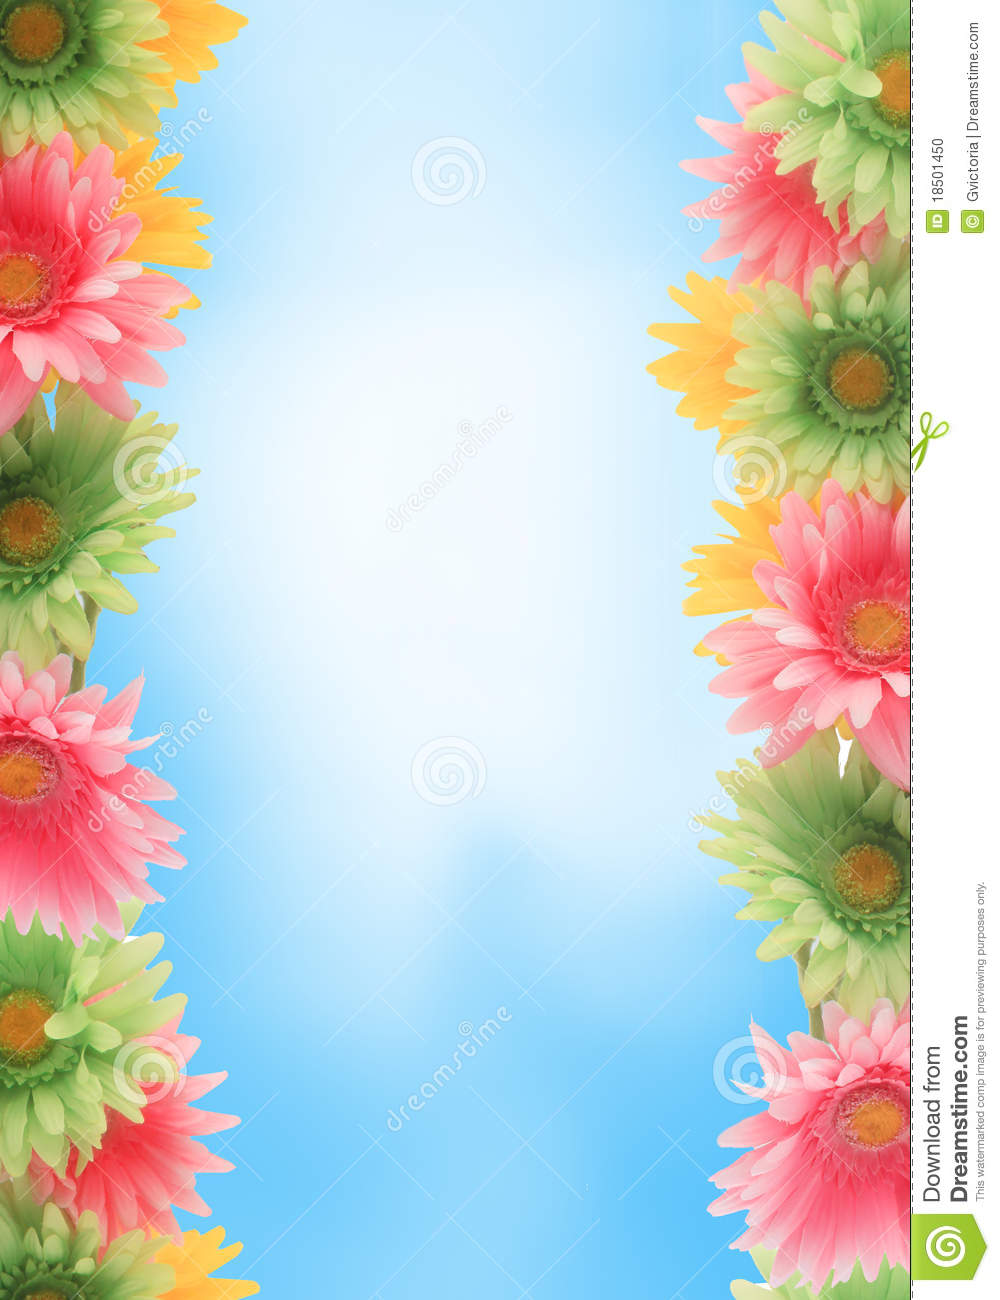 Pretty colorful gerber daisy border or frame with spring colors on ...: www.dreamstime.com/stock-photo-colorful-floral-spring-border...